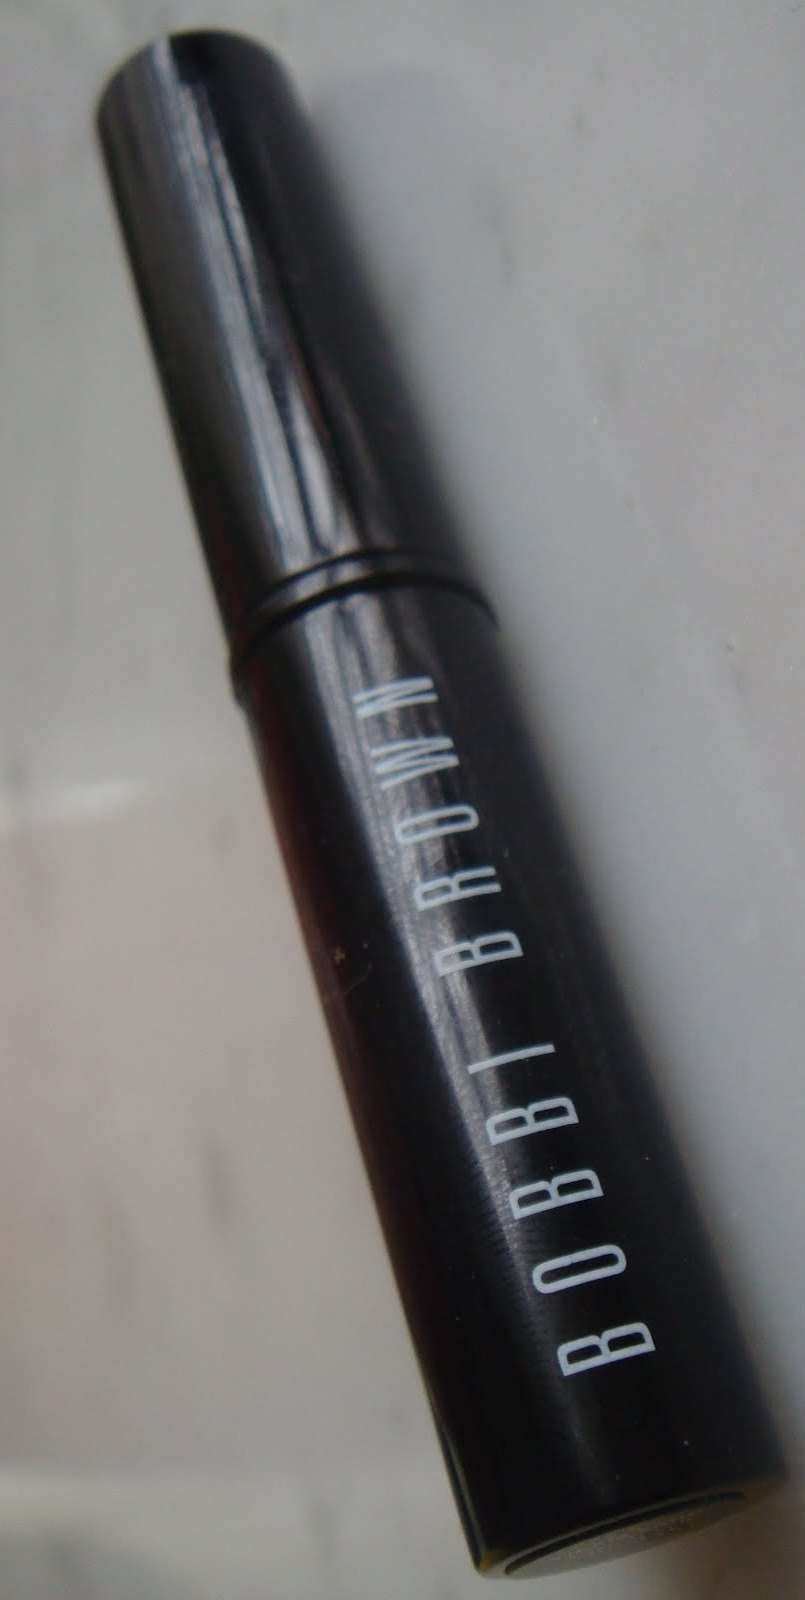 Bobbi Brown Face Touch Up Stick-Conceals well-By aparna_dhakne-1